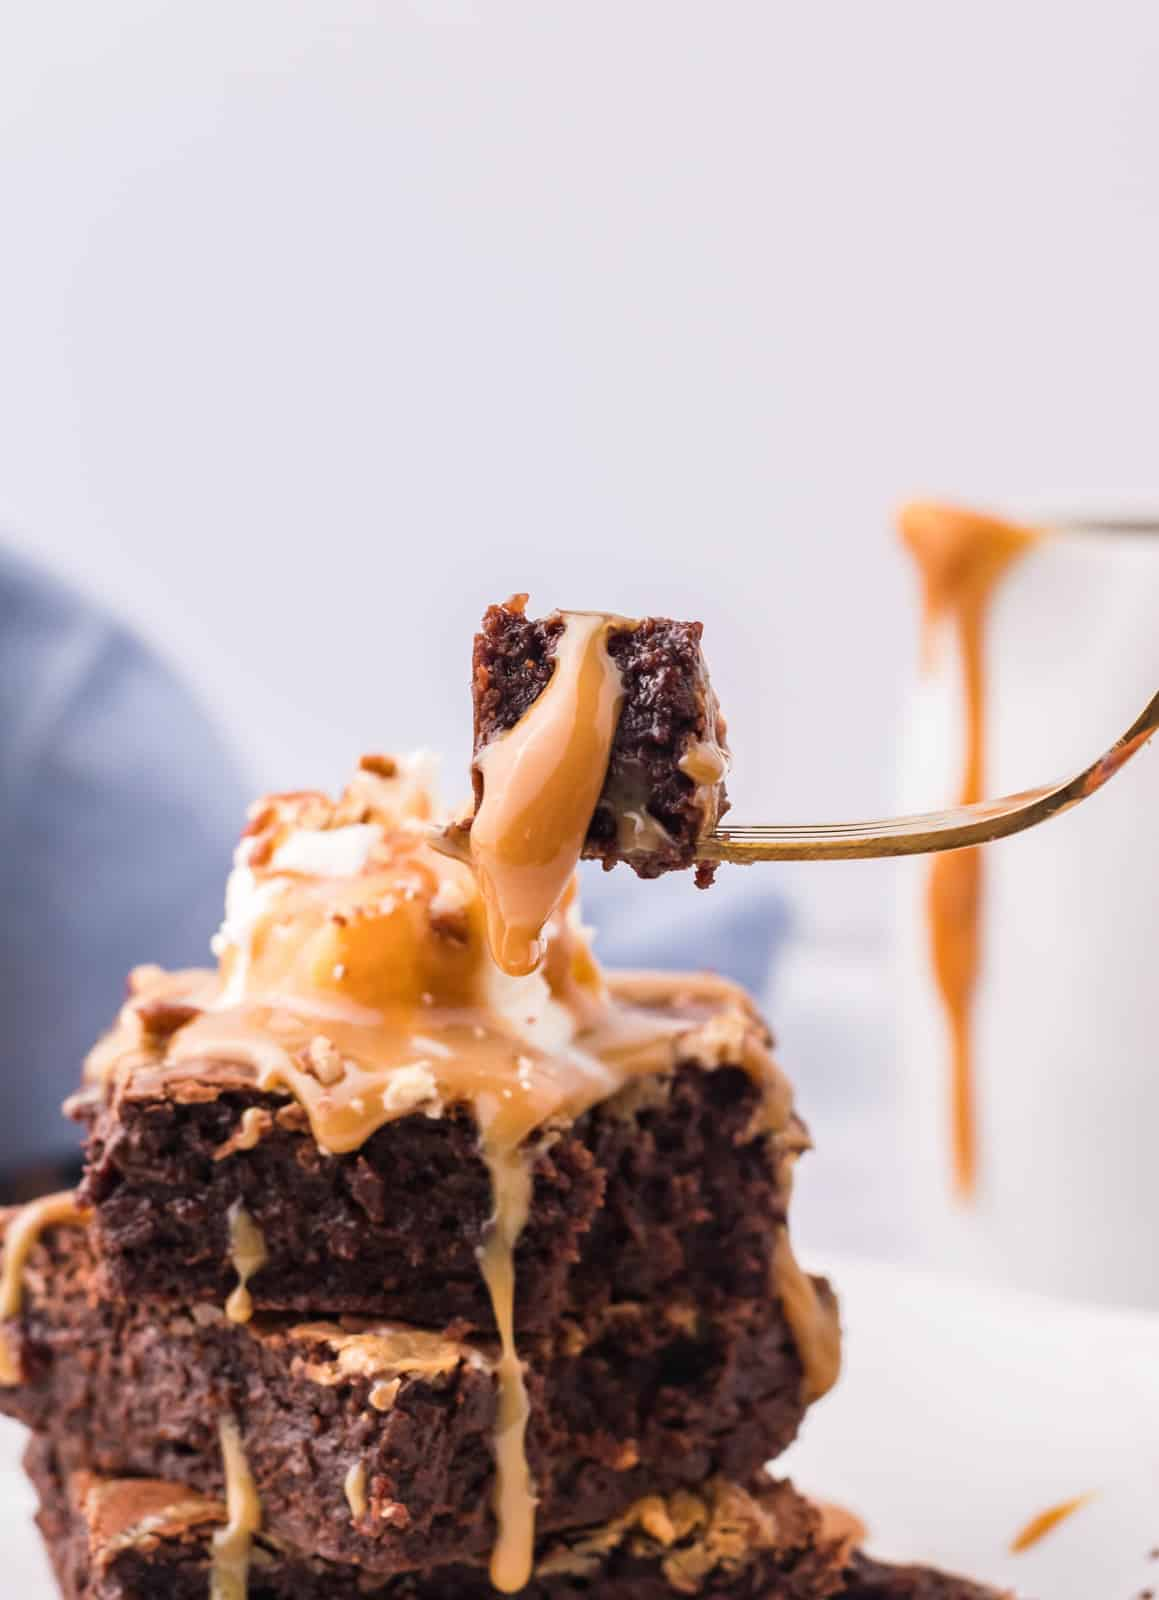 Fork lifting a bite out of Caramel Brownies